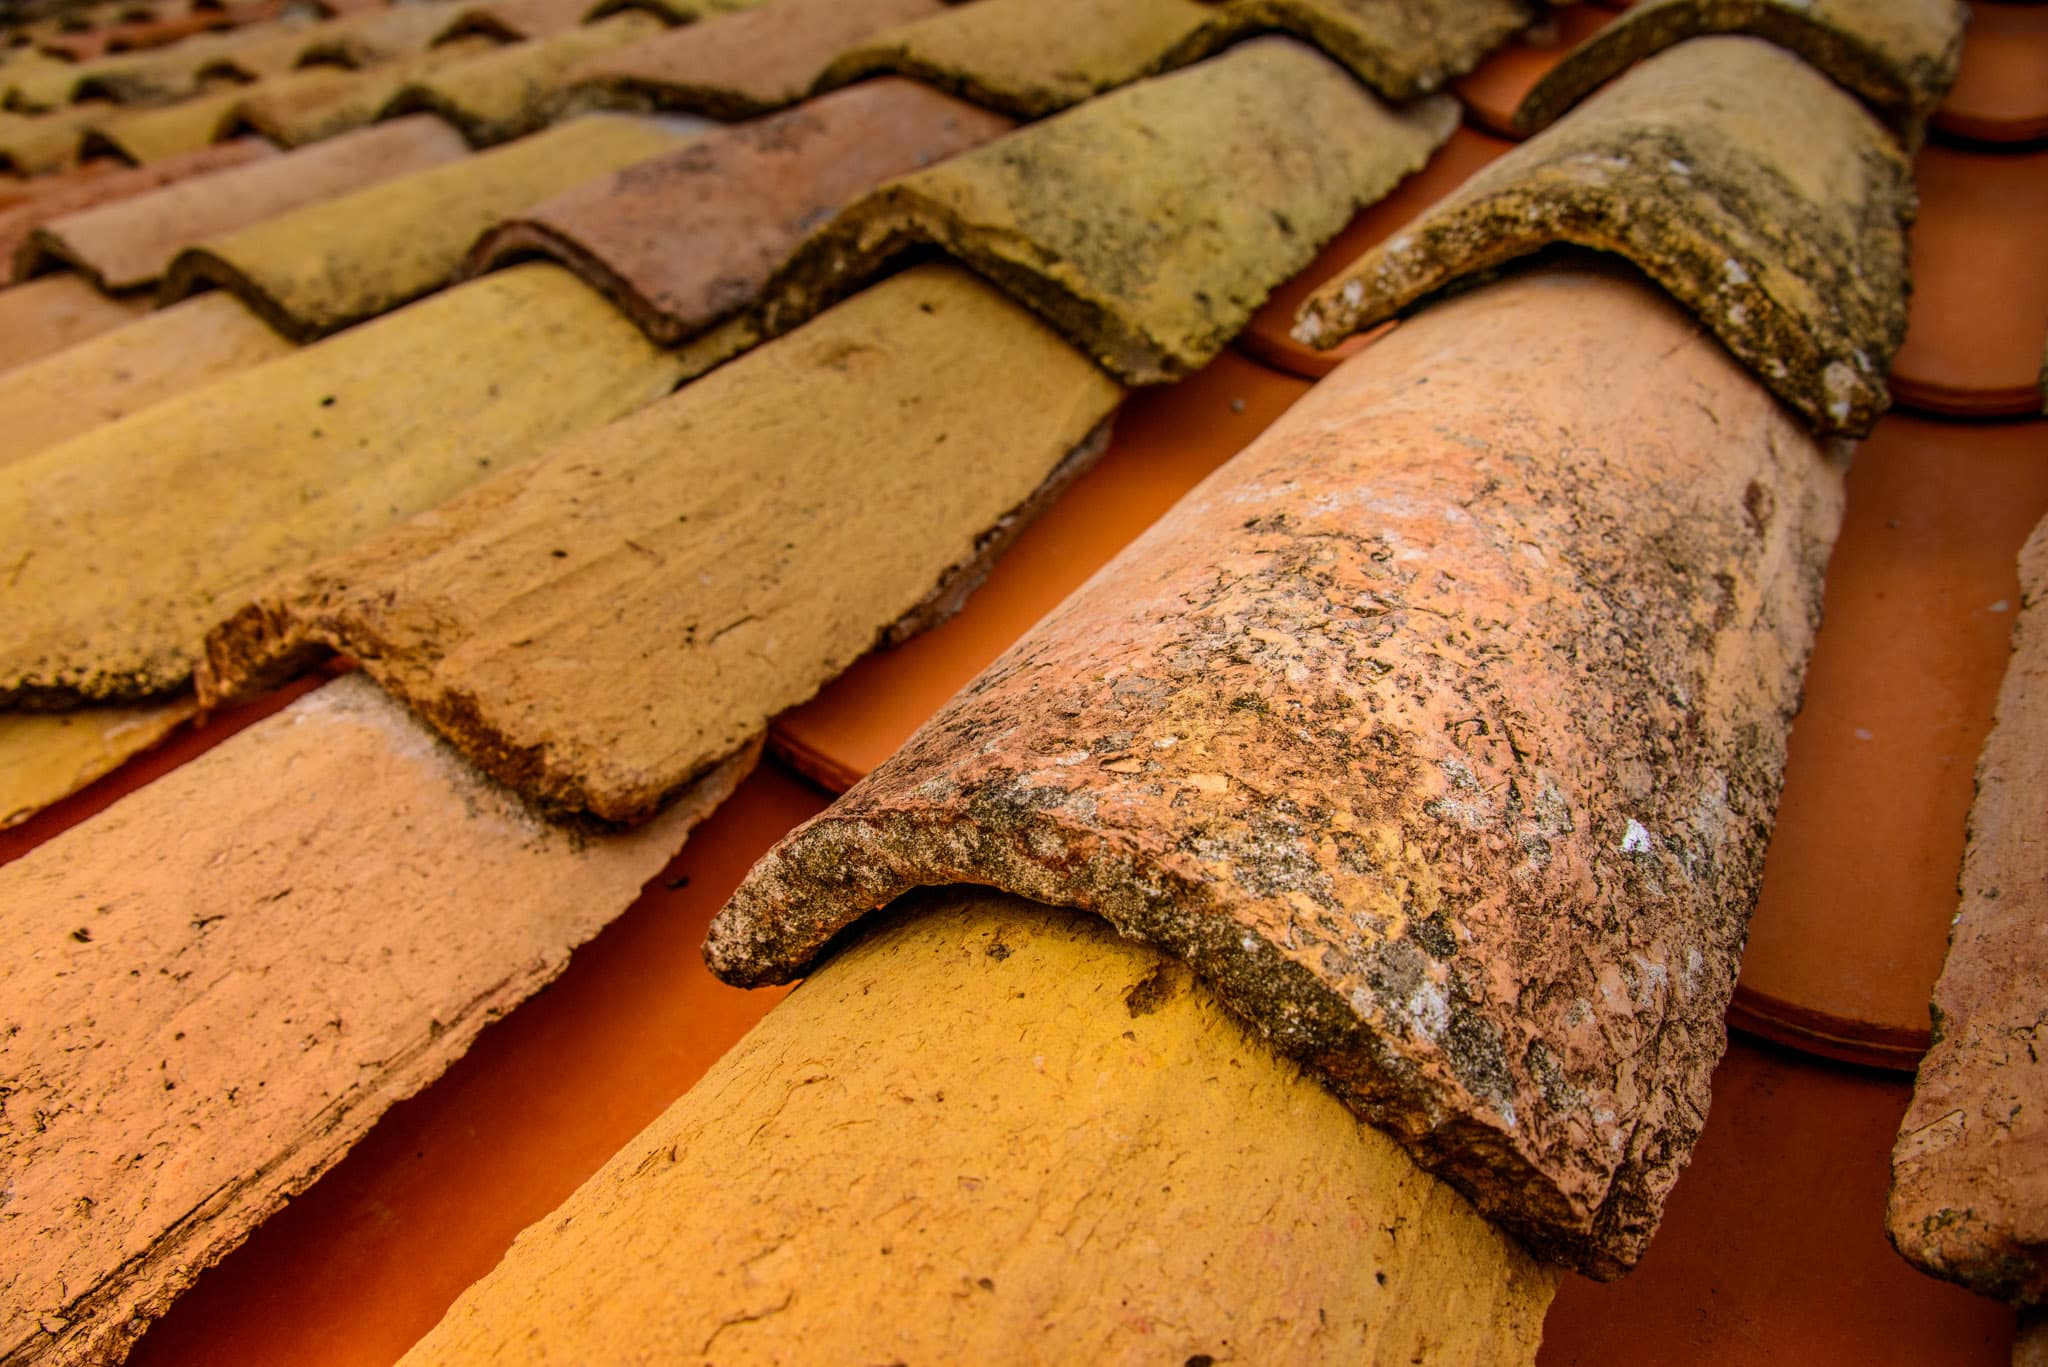 A close-up shot of red roof tiles taken from the wall surrounding Dubrovnik Old City in Croatia.